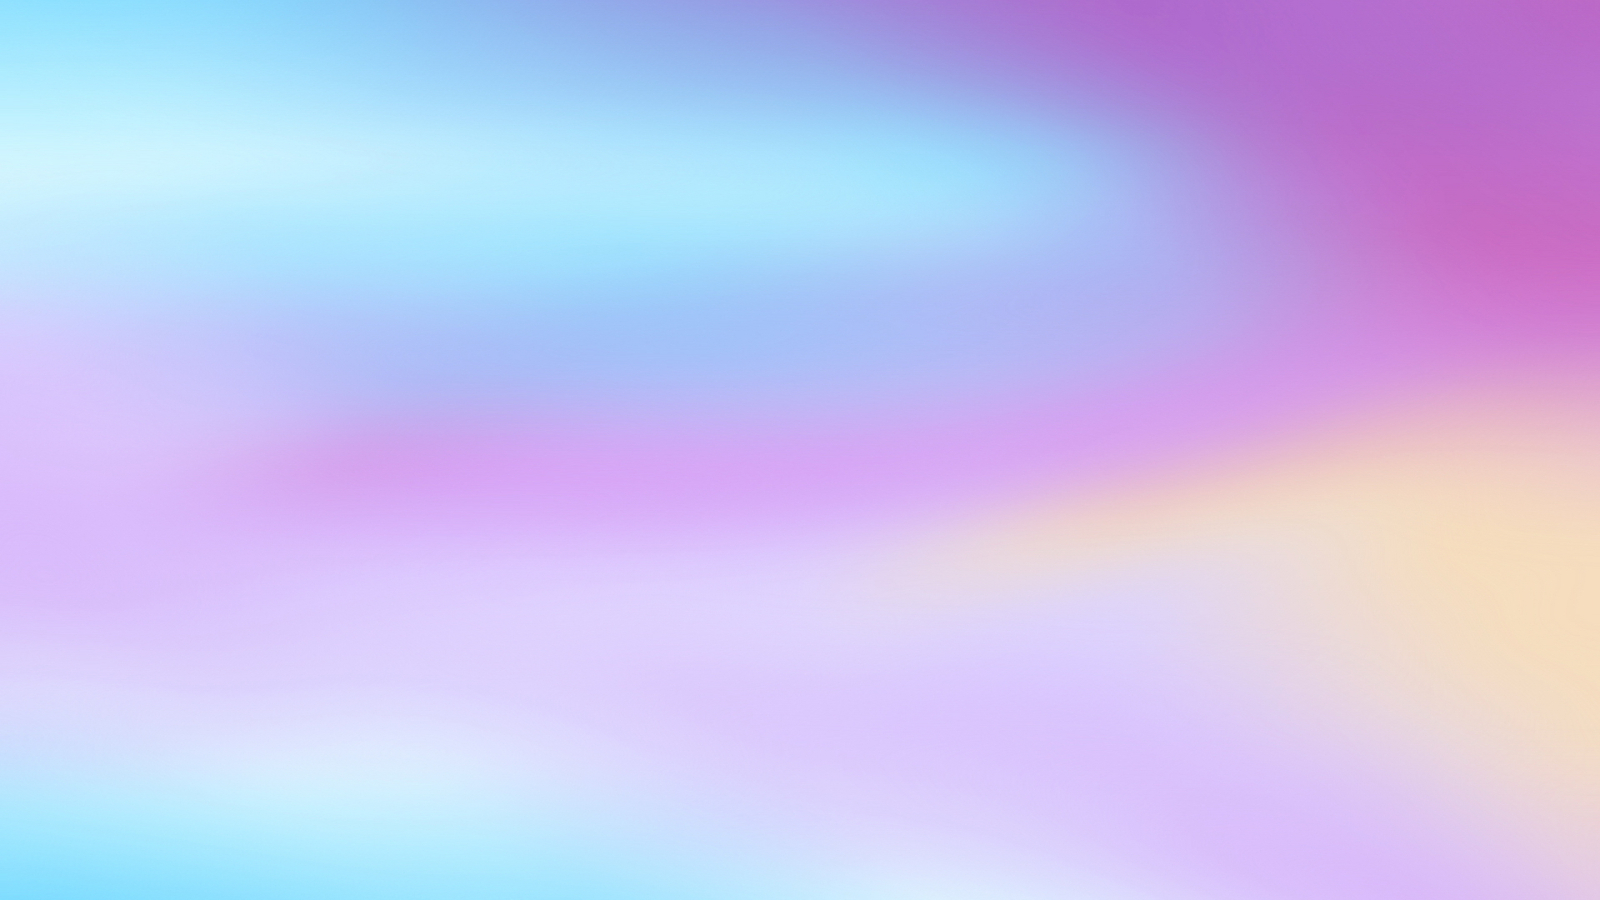 Love Quotes Wallpapers For Pc Free Download Pastel Colors Rendering Wallpaper 3d And Abstract